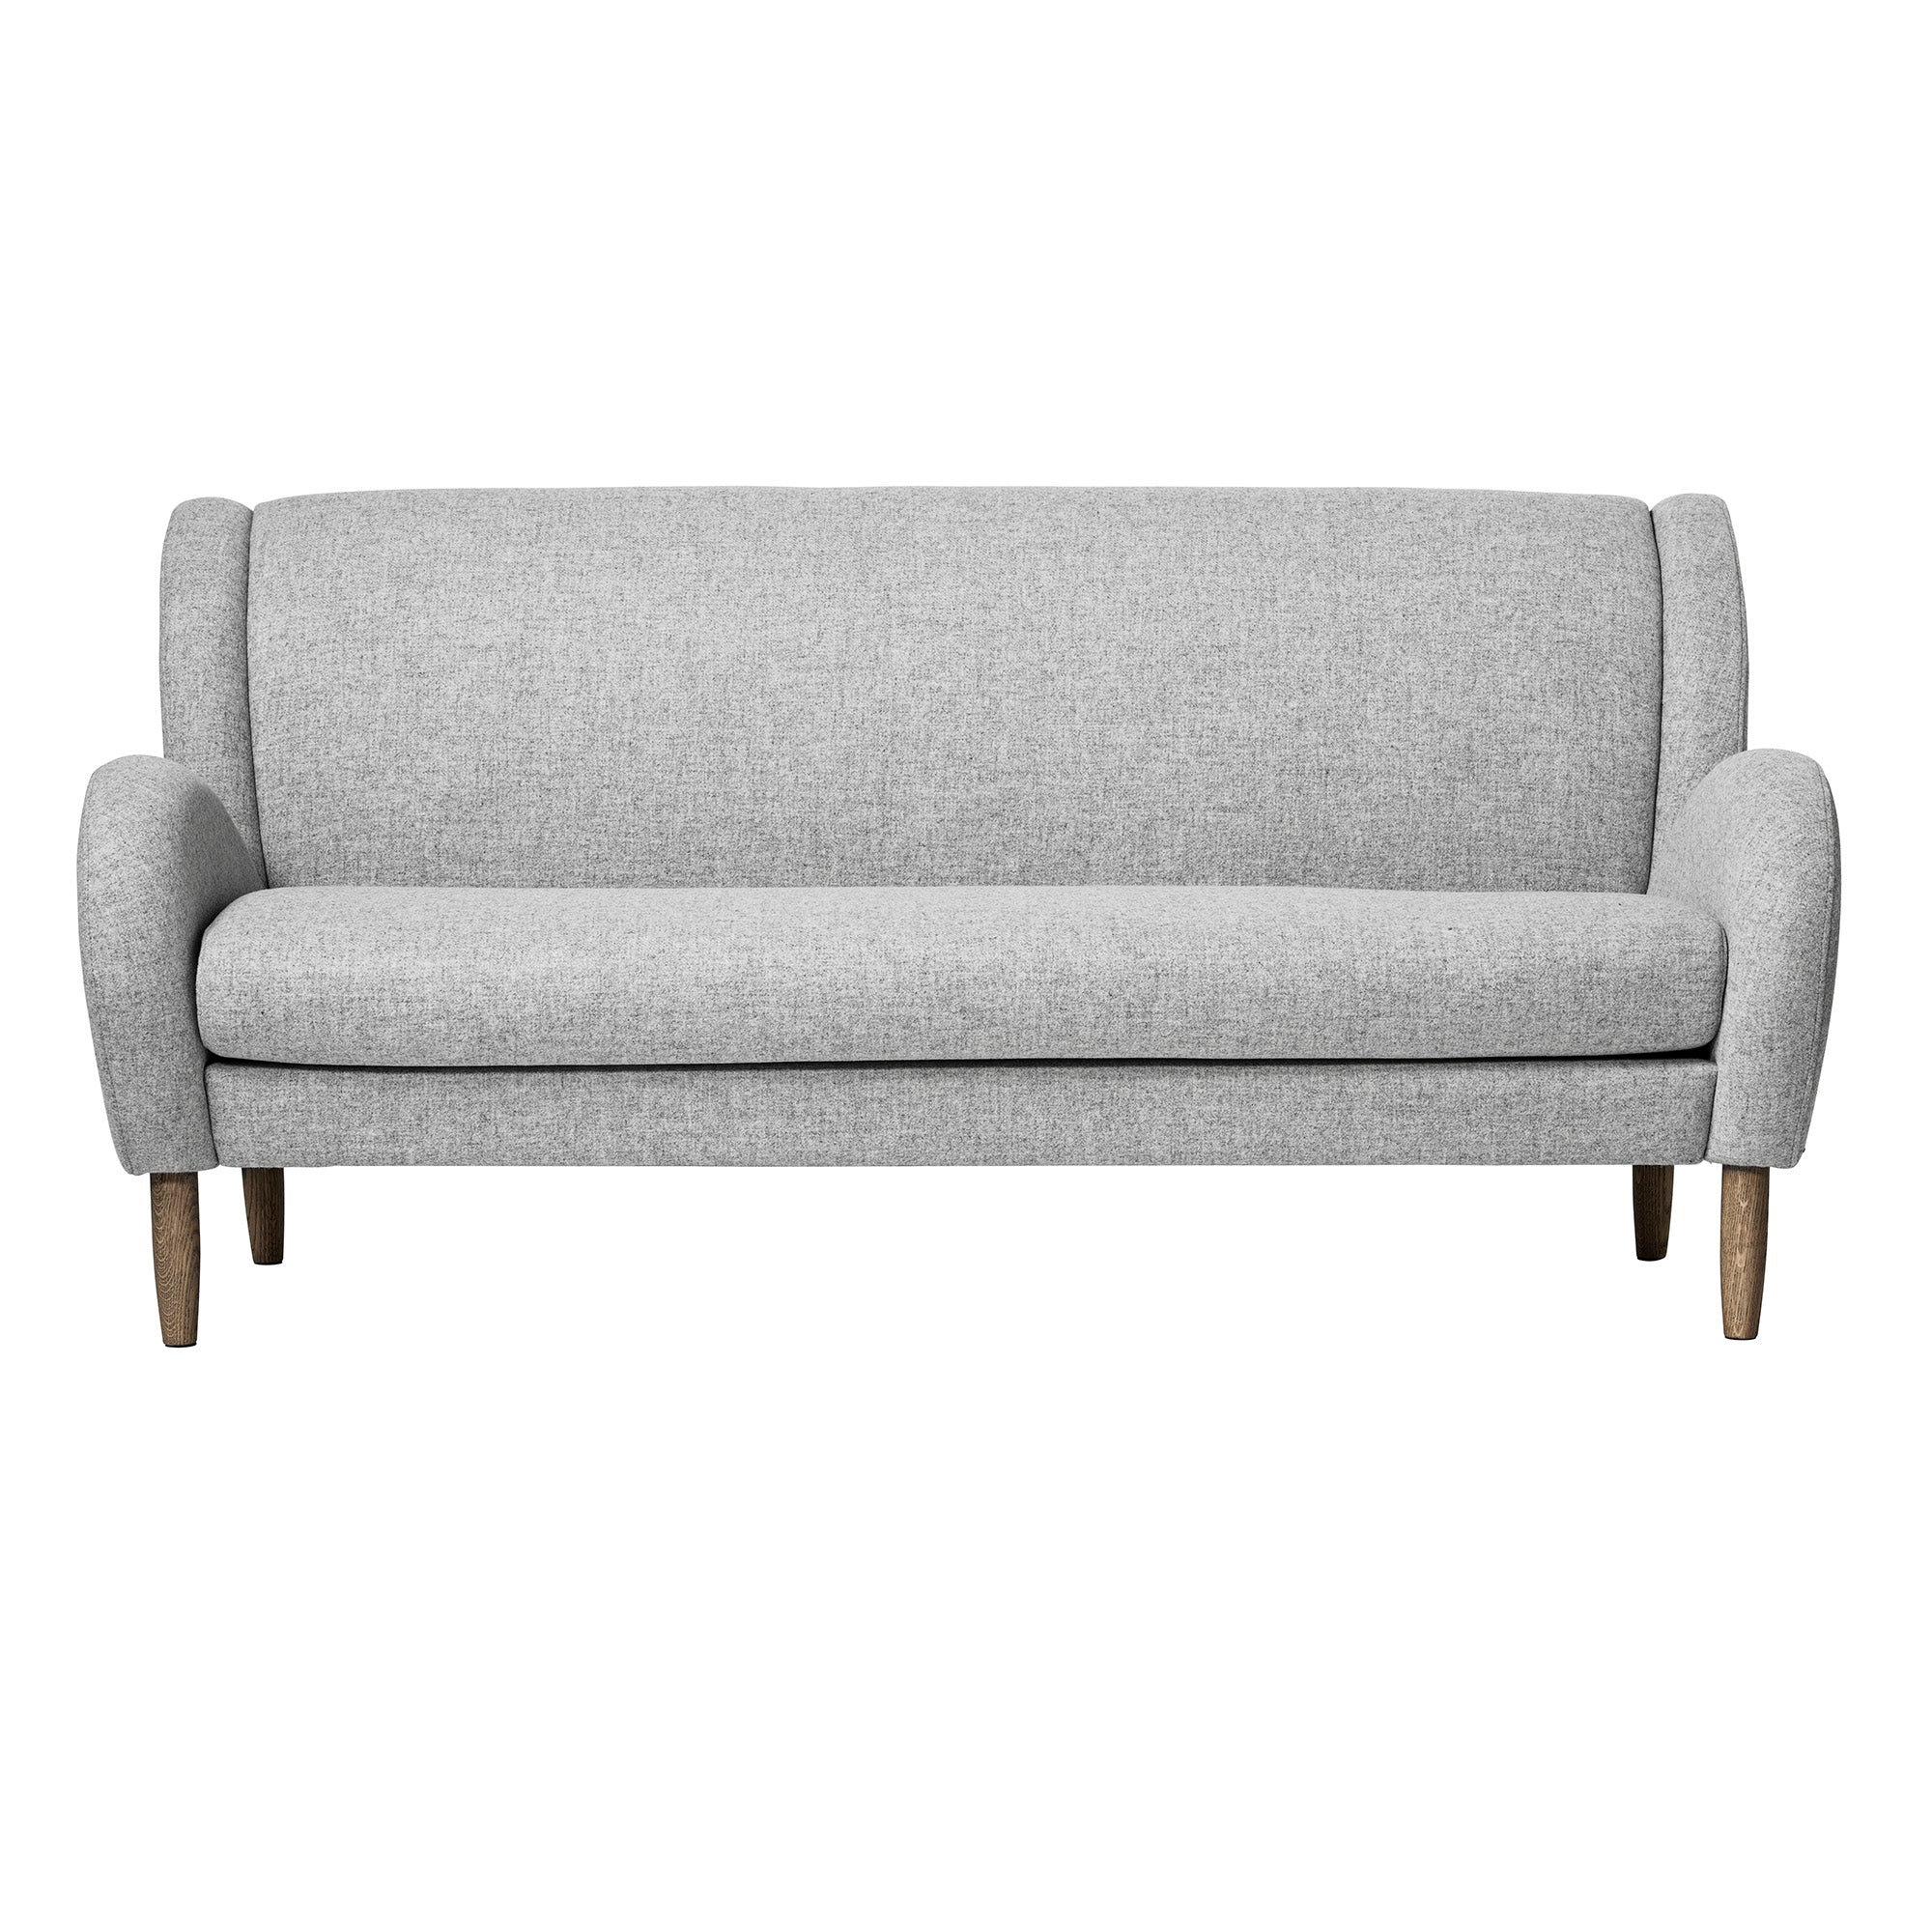 Bloomingville Chill Sofa, Grå, Uld